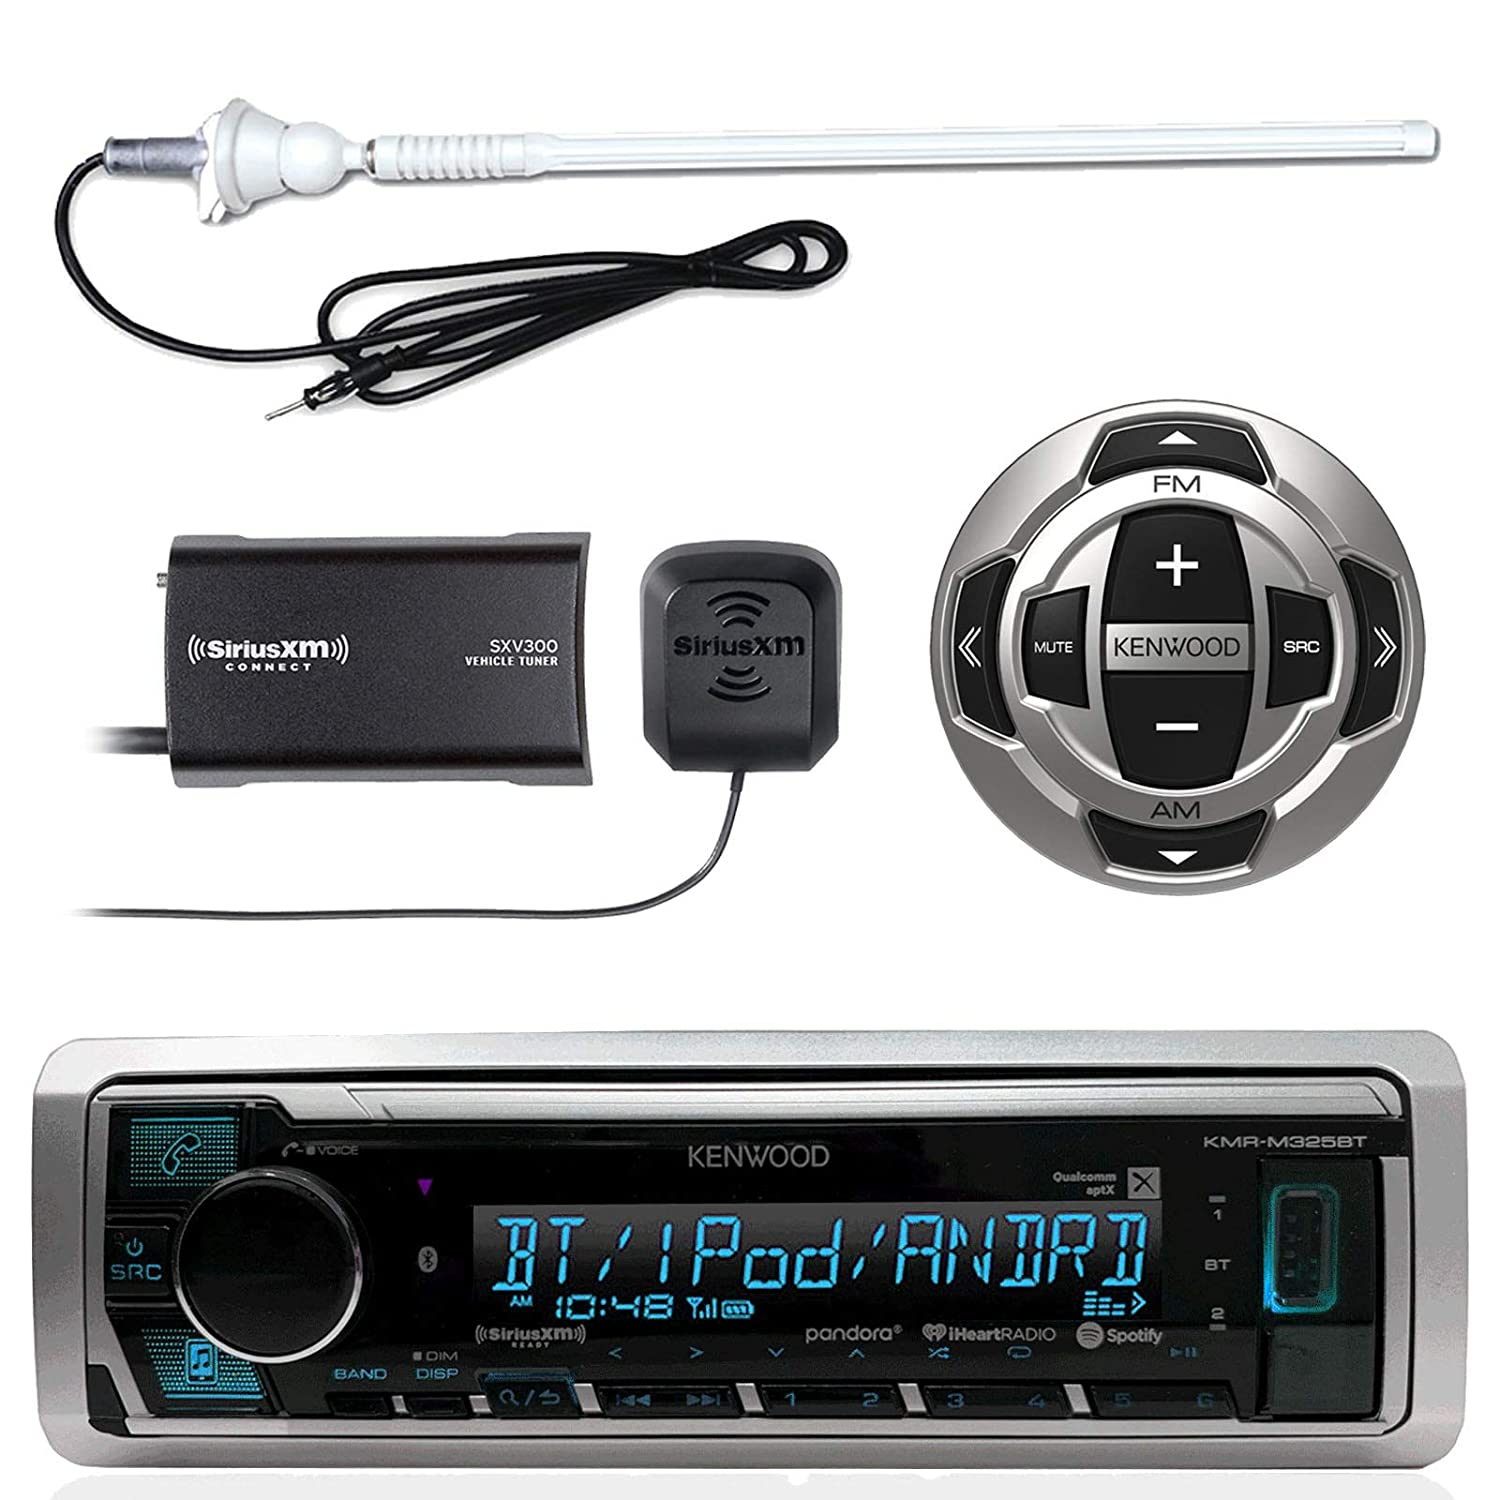 Bundle Combo with KCARC35MR Wired Remote Control Kenwood MP3//USB//AUX Marine Boat Yacht Stereo Receiver SiriusXM Radio Tuner Enrock Outdoor Rubber Mast 45 Antenna Enrock Outdoor Rubber Mast 45 Antenna Kenwood Enrock Sirius-XM